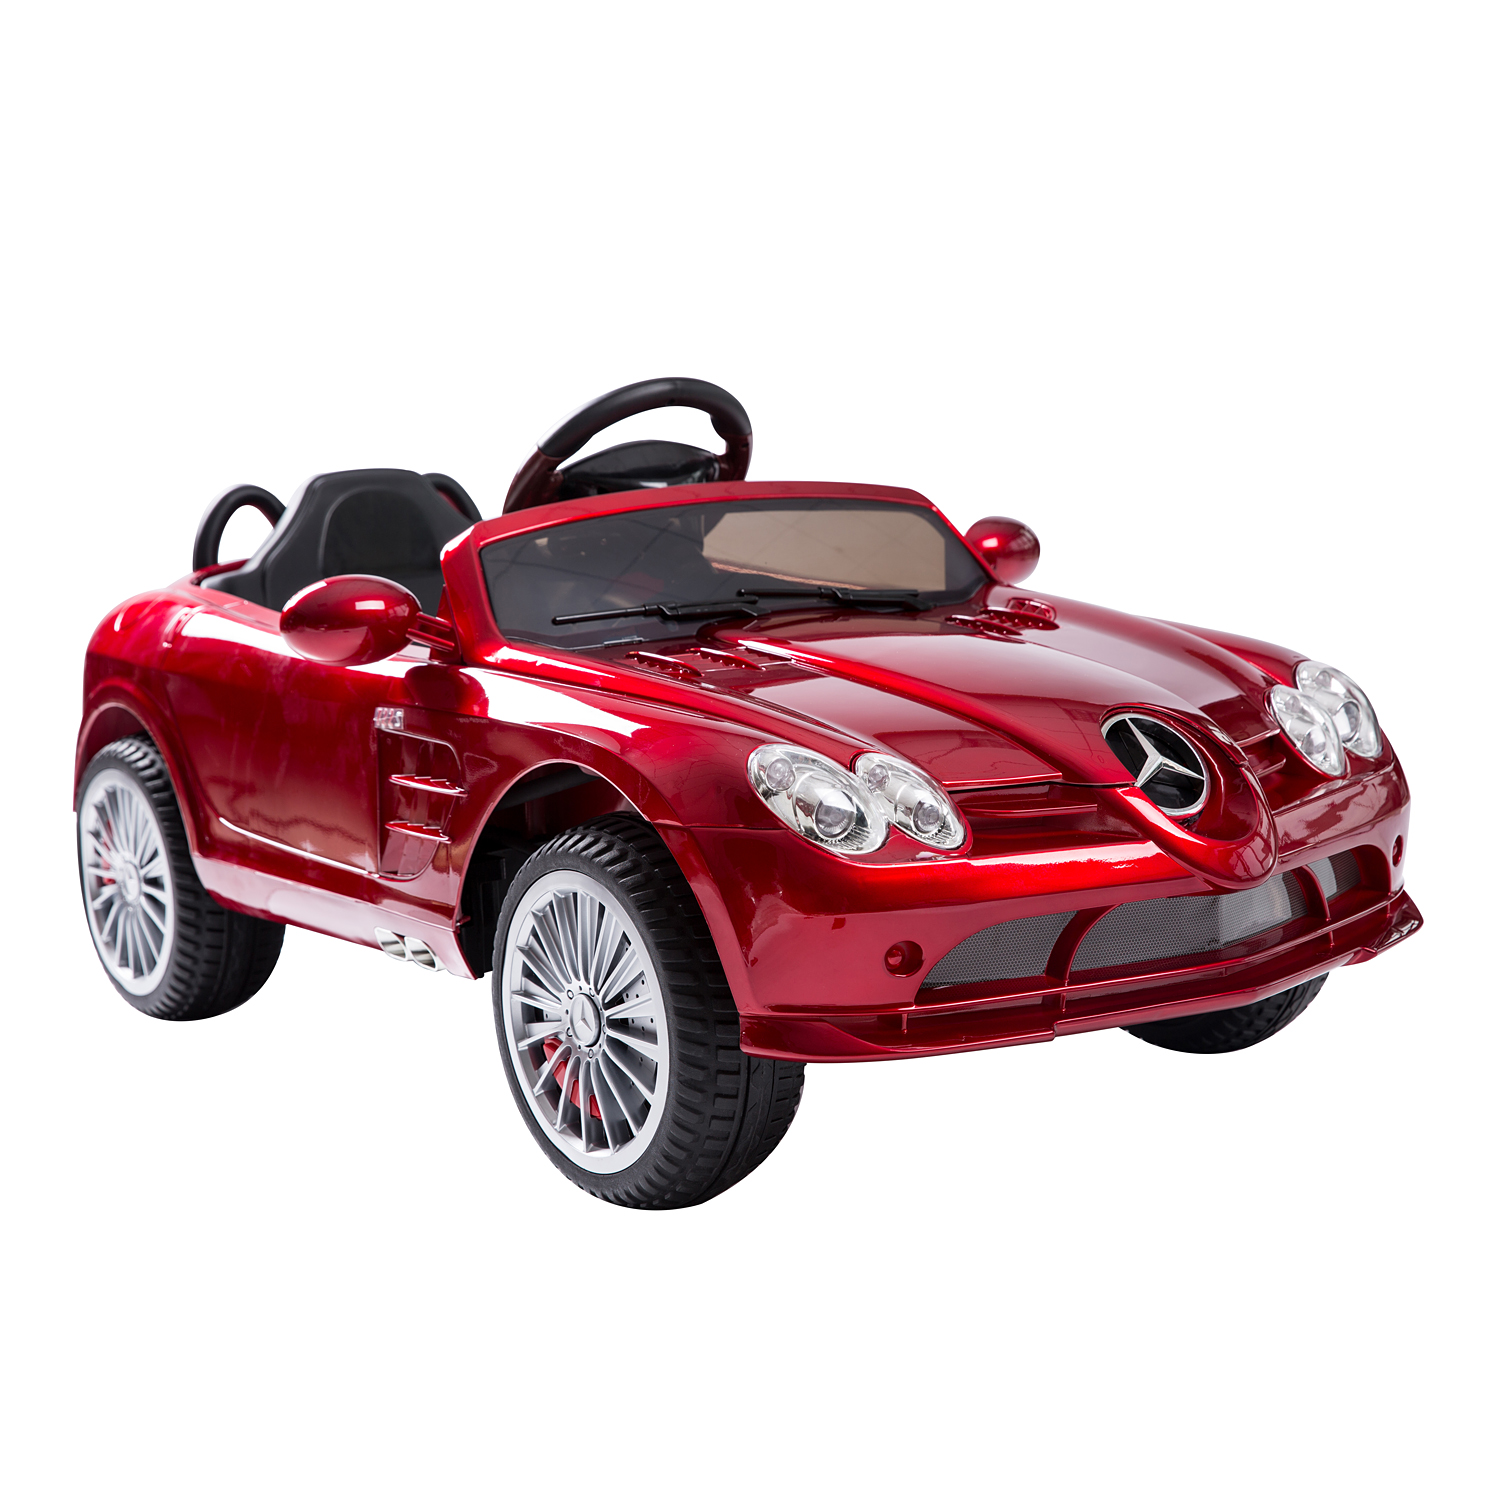 Mercedes-Benz CLS 12V Electric Battery Kids Toy Ride On Car w/ Remote - Red